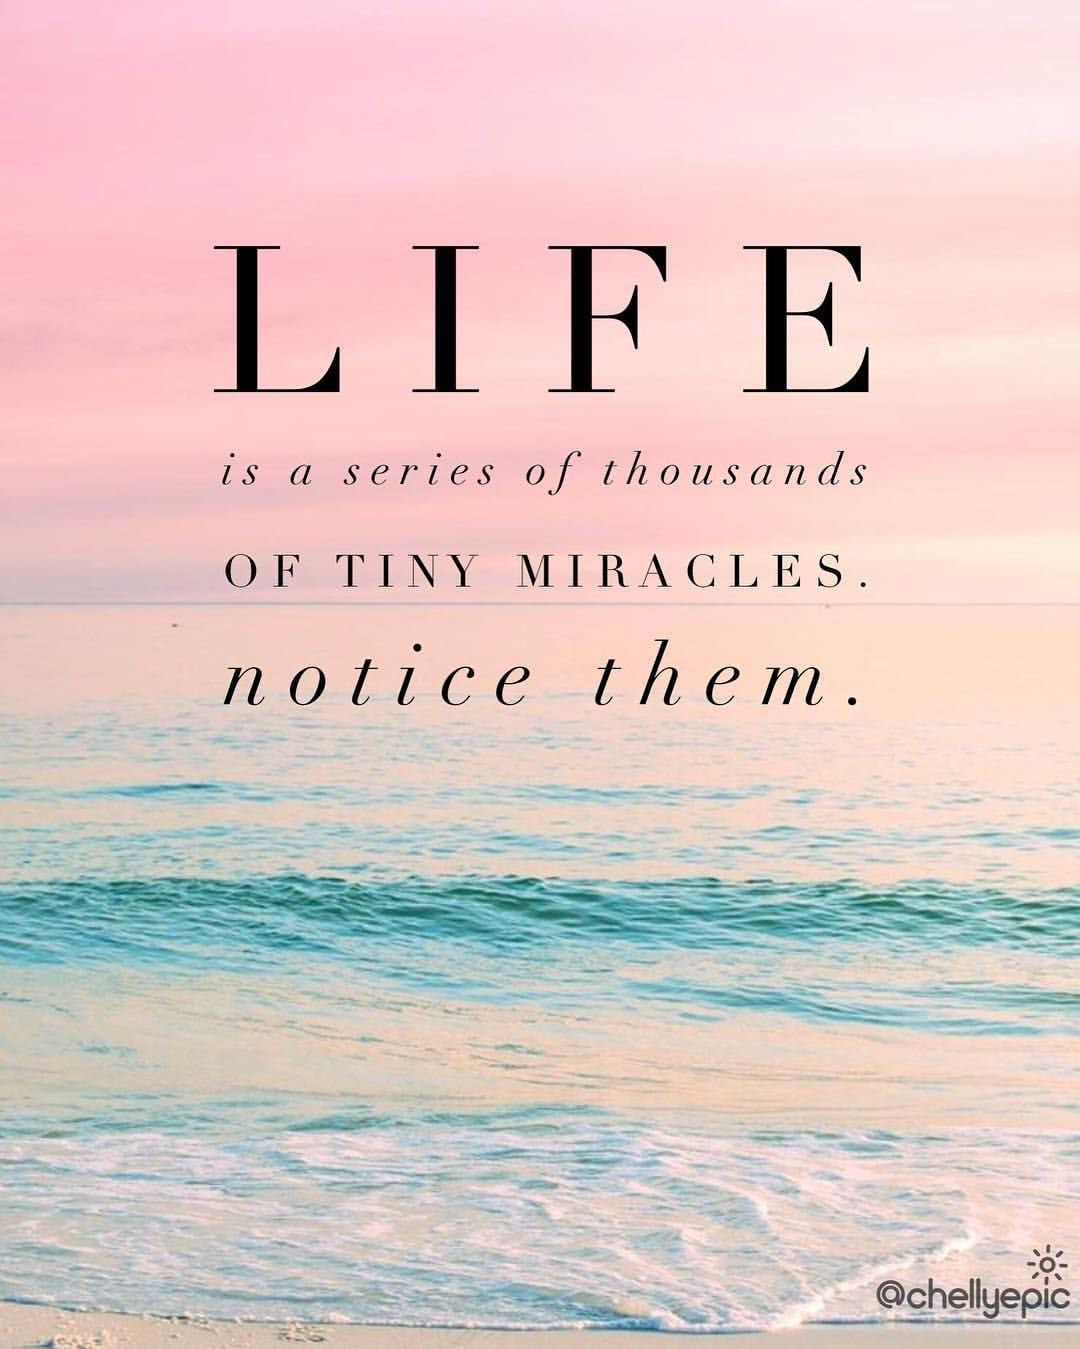 Quotes About Life: Life Is A Series Of Thousands Of Tiny Miracles. Notice